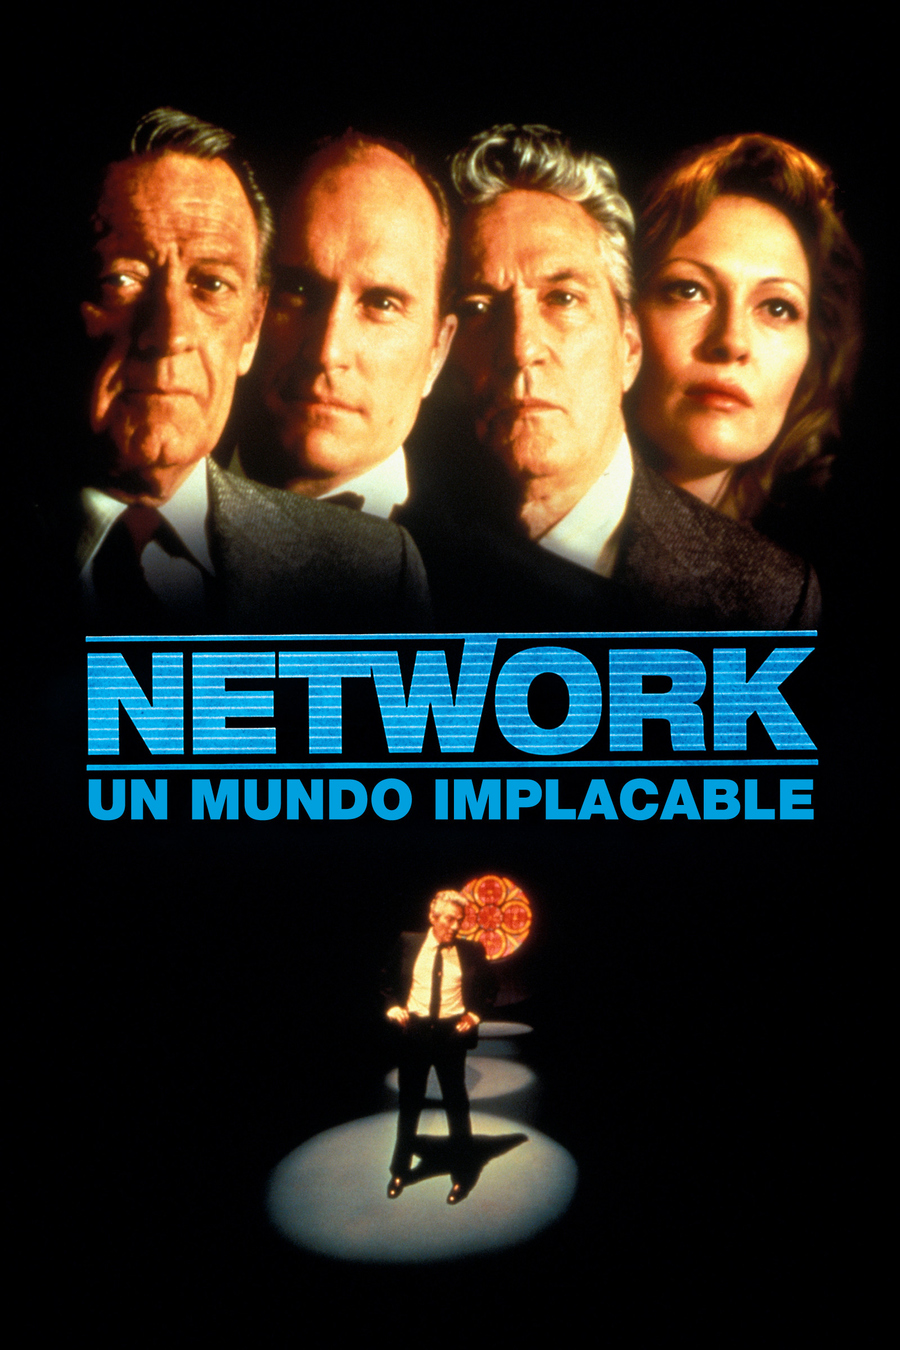 Network, un mundo implacable